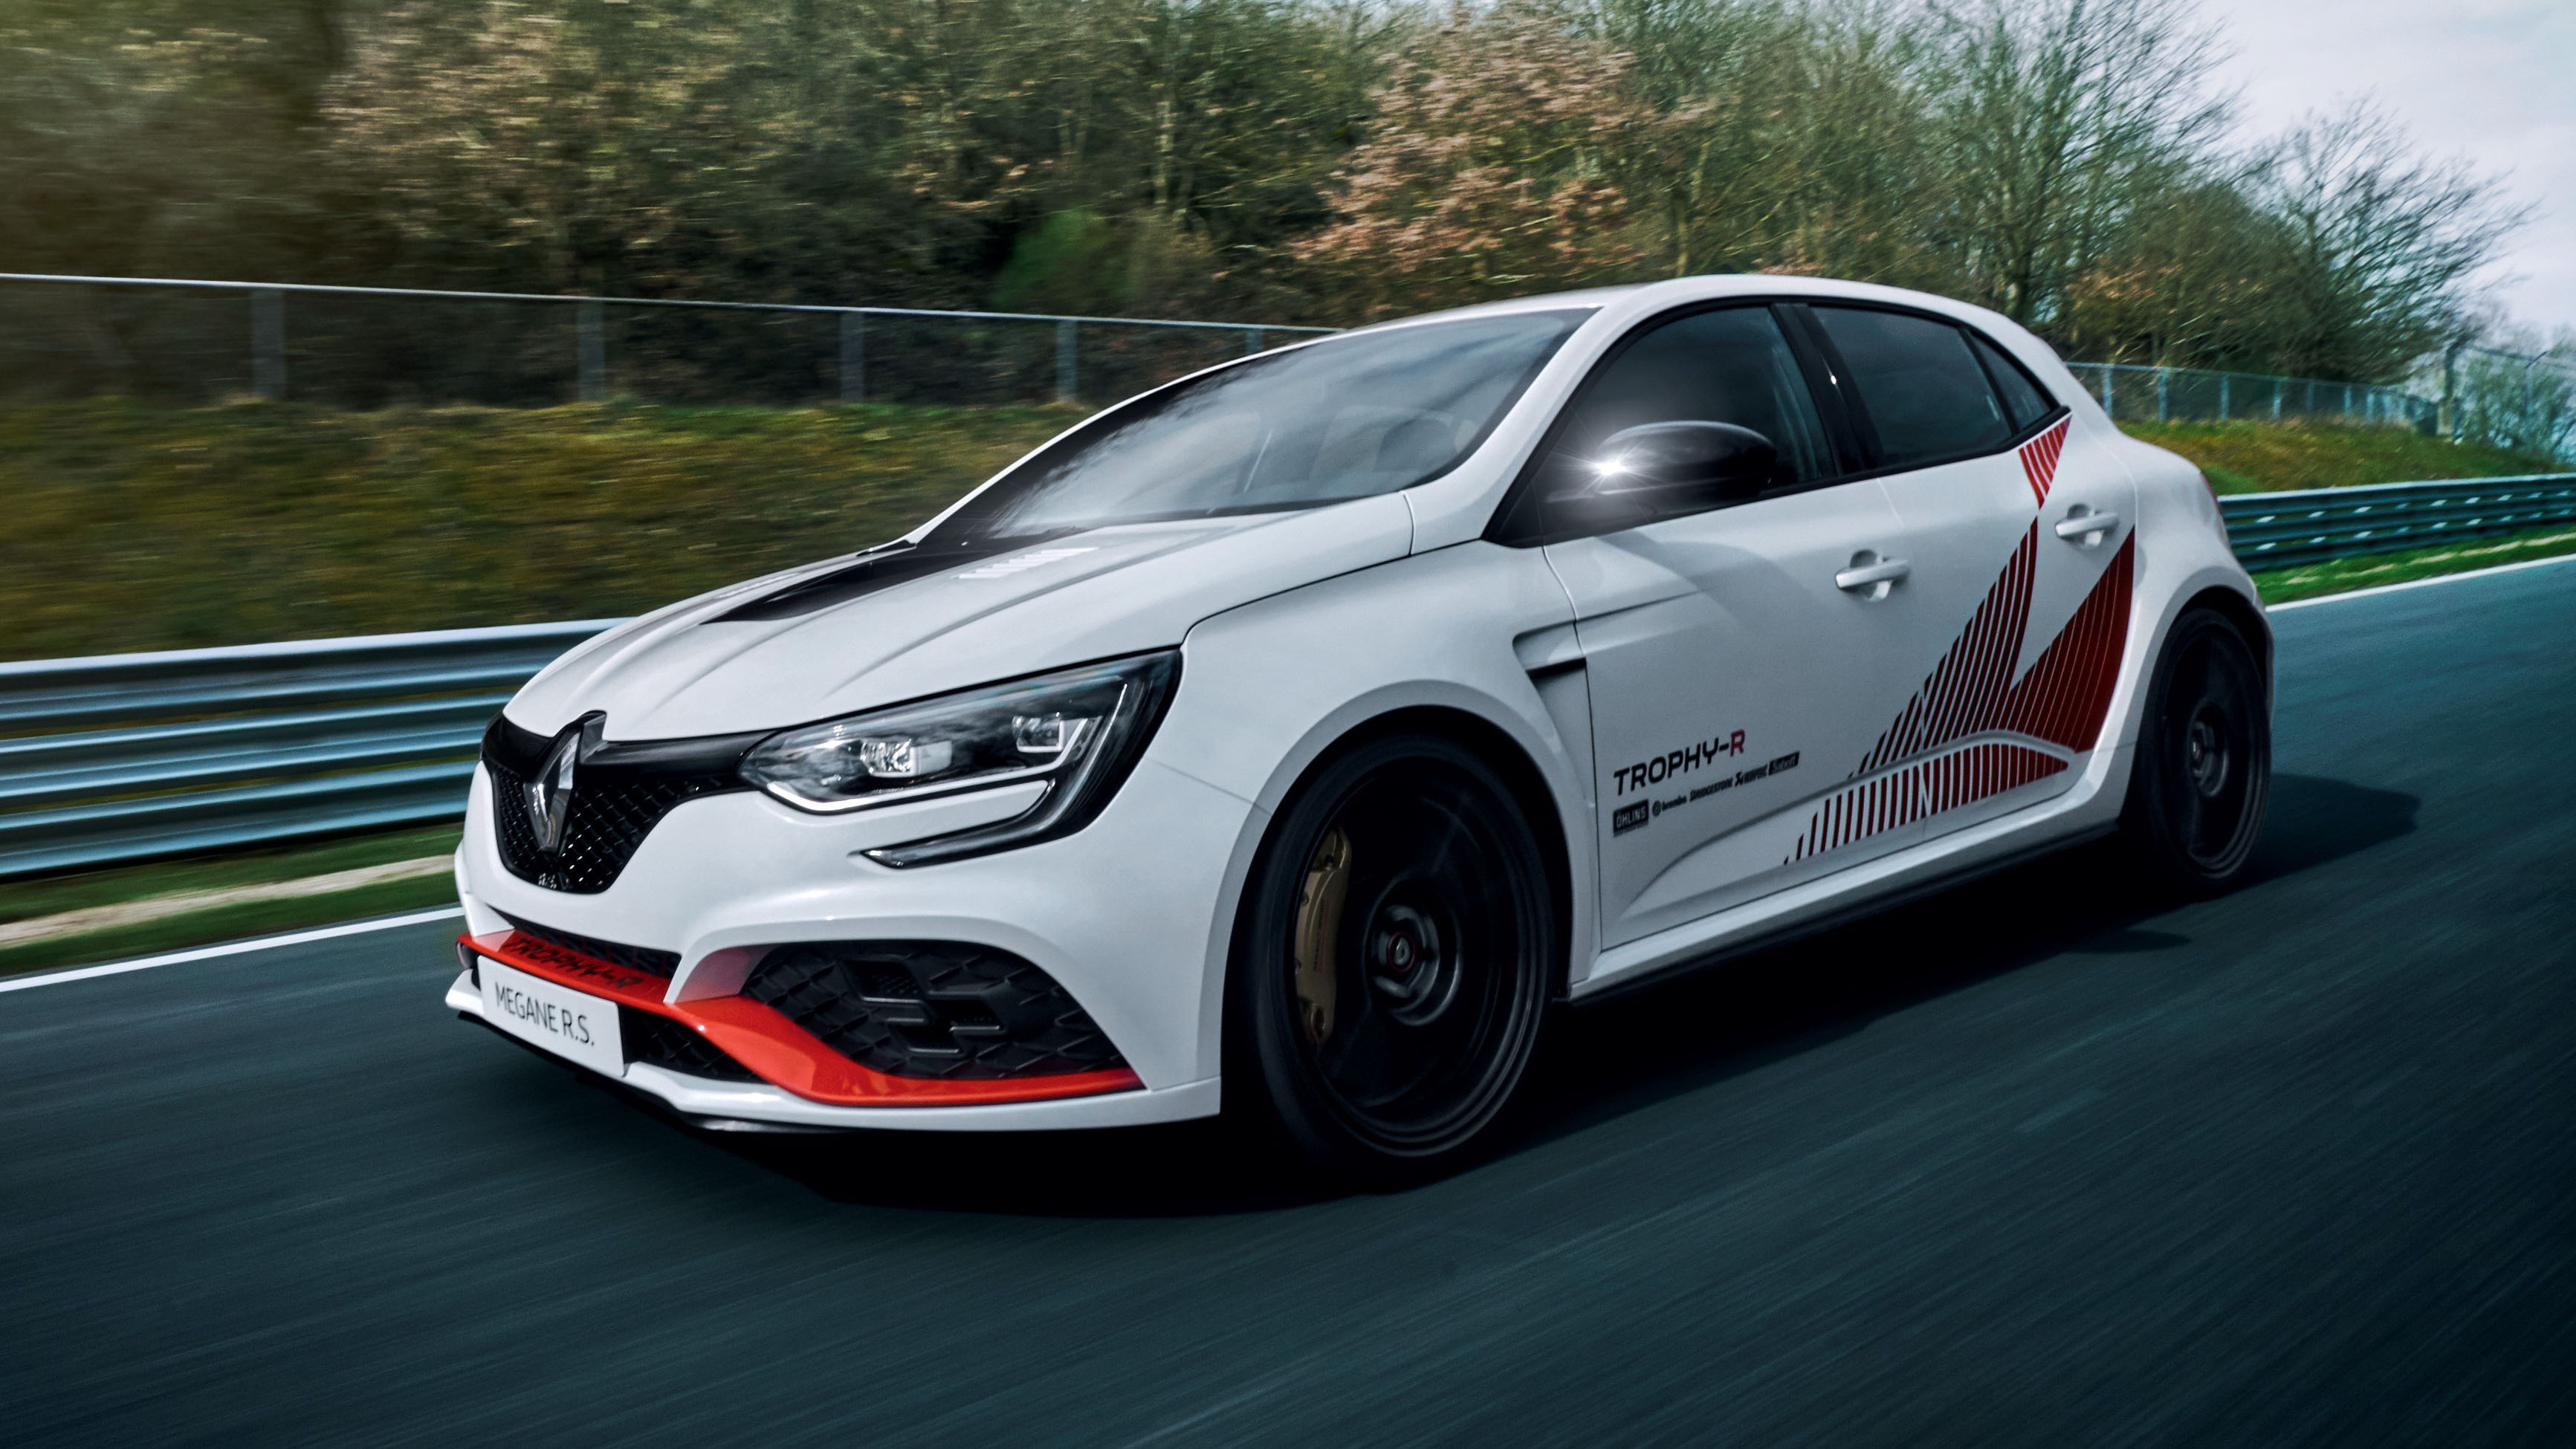 2020 Renault Megane Rs Trophy R Revealed Australian Launch Confirmed Caradvice